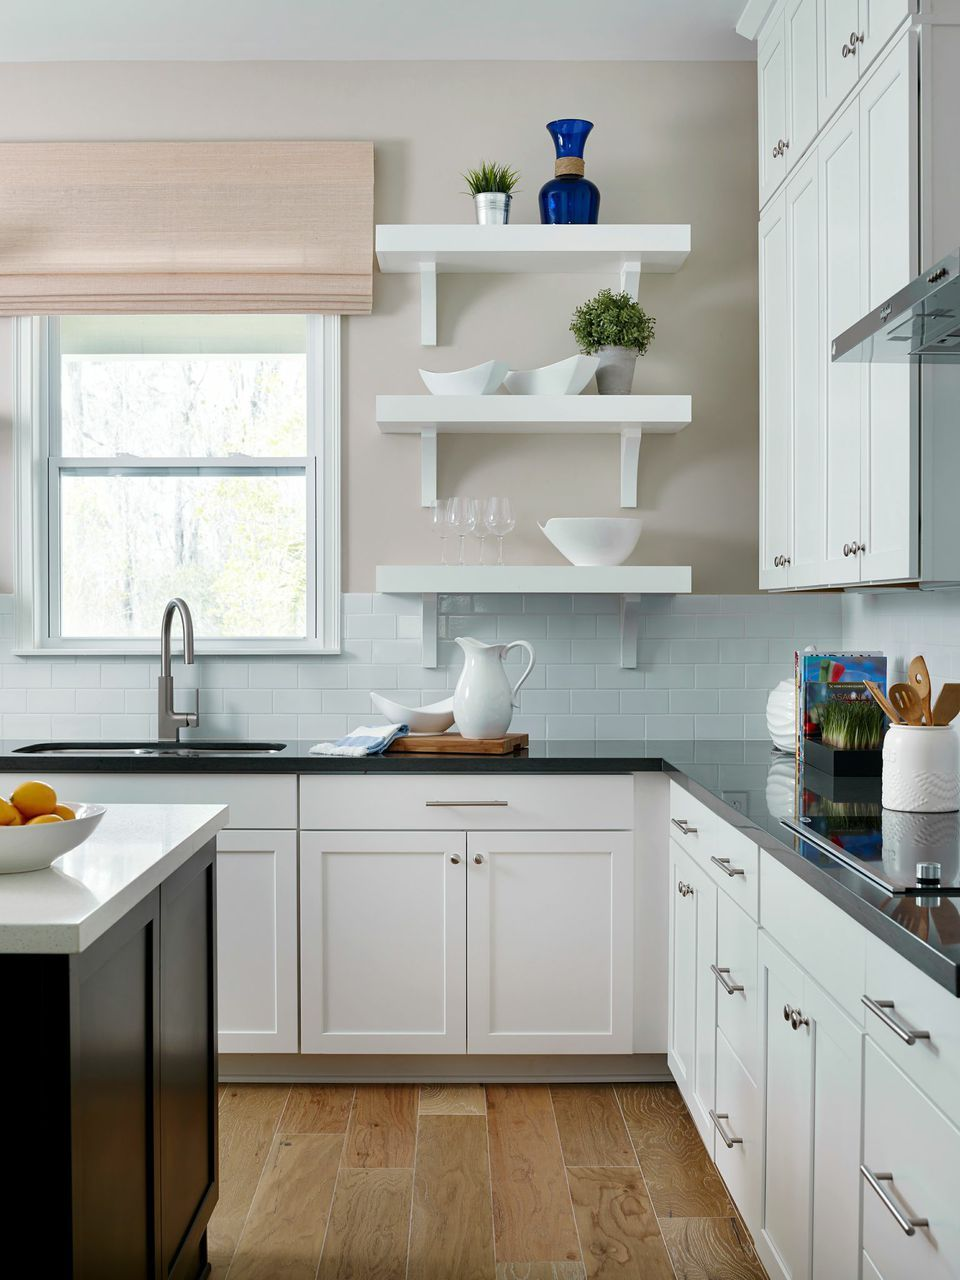 Create a crisp clean look in your kitchen with white wooden cabinets ...